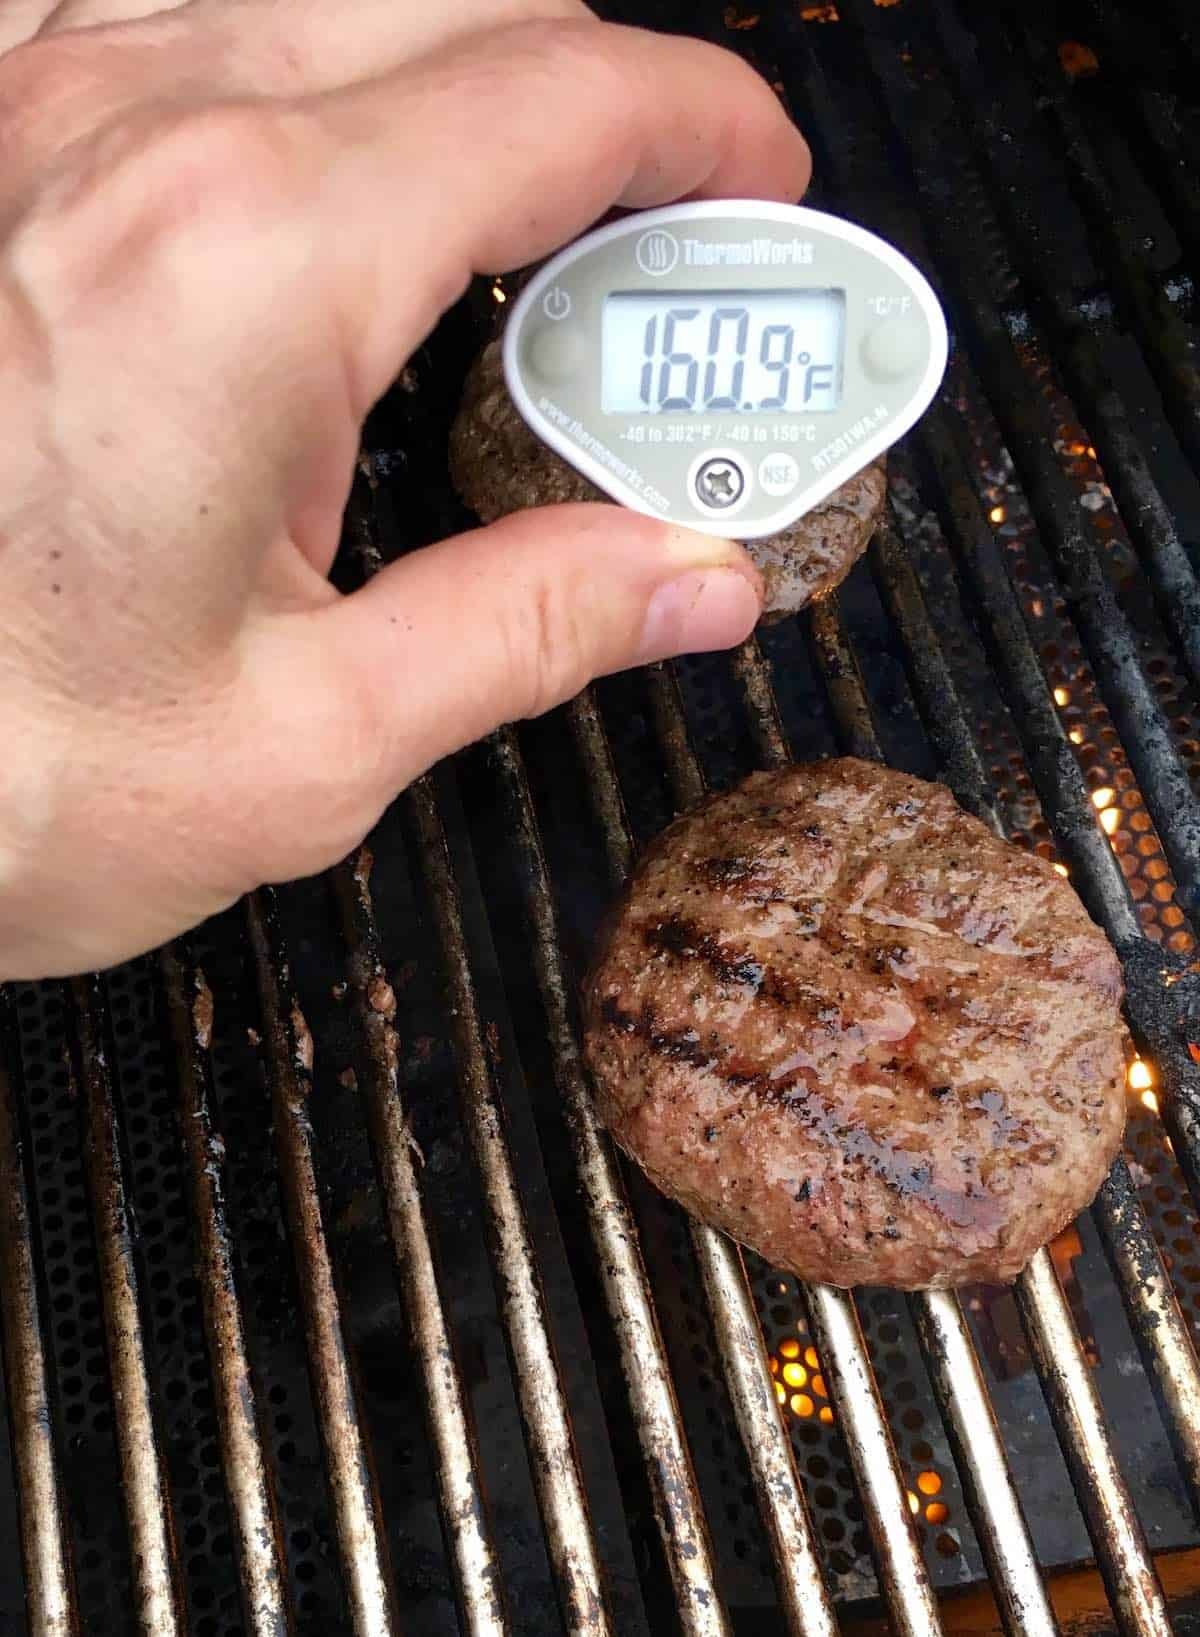 grilled burgers with instant read thermometer 160.9F